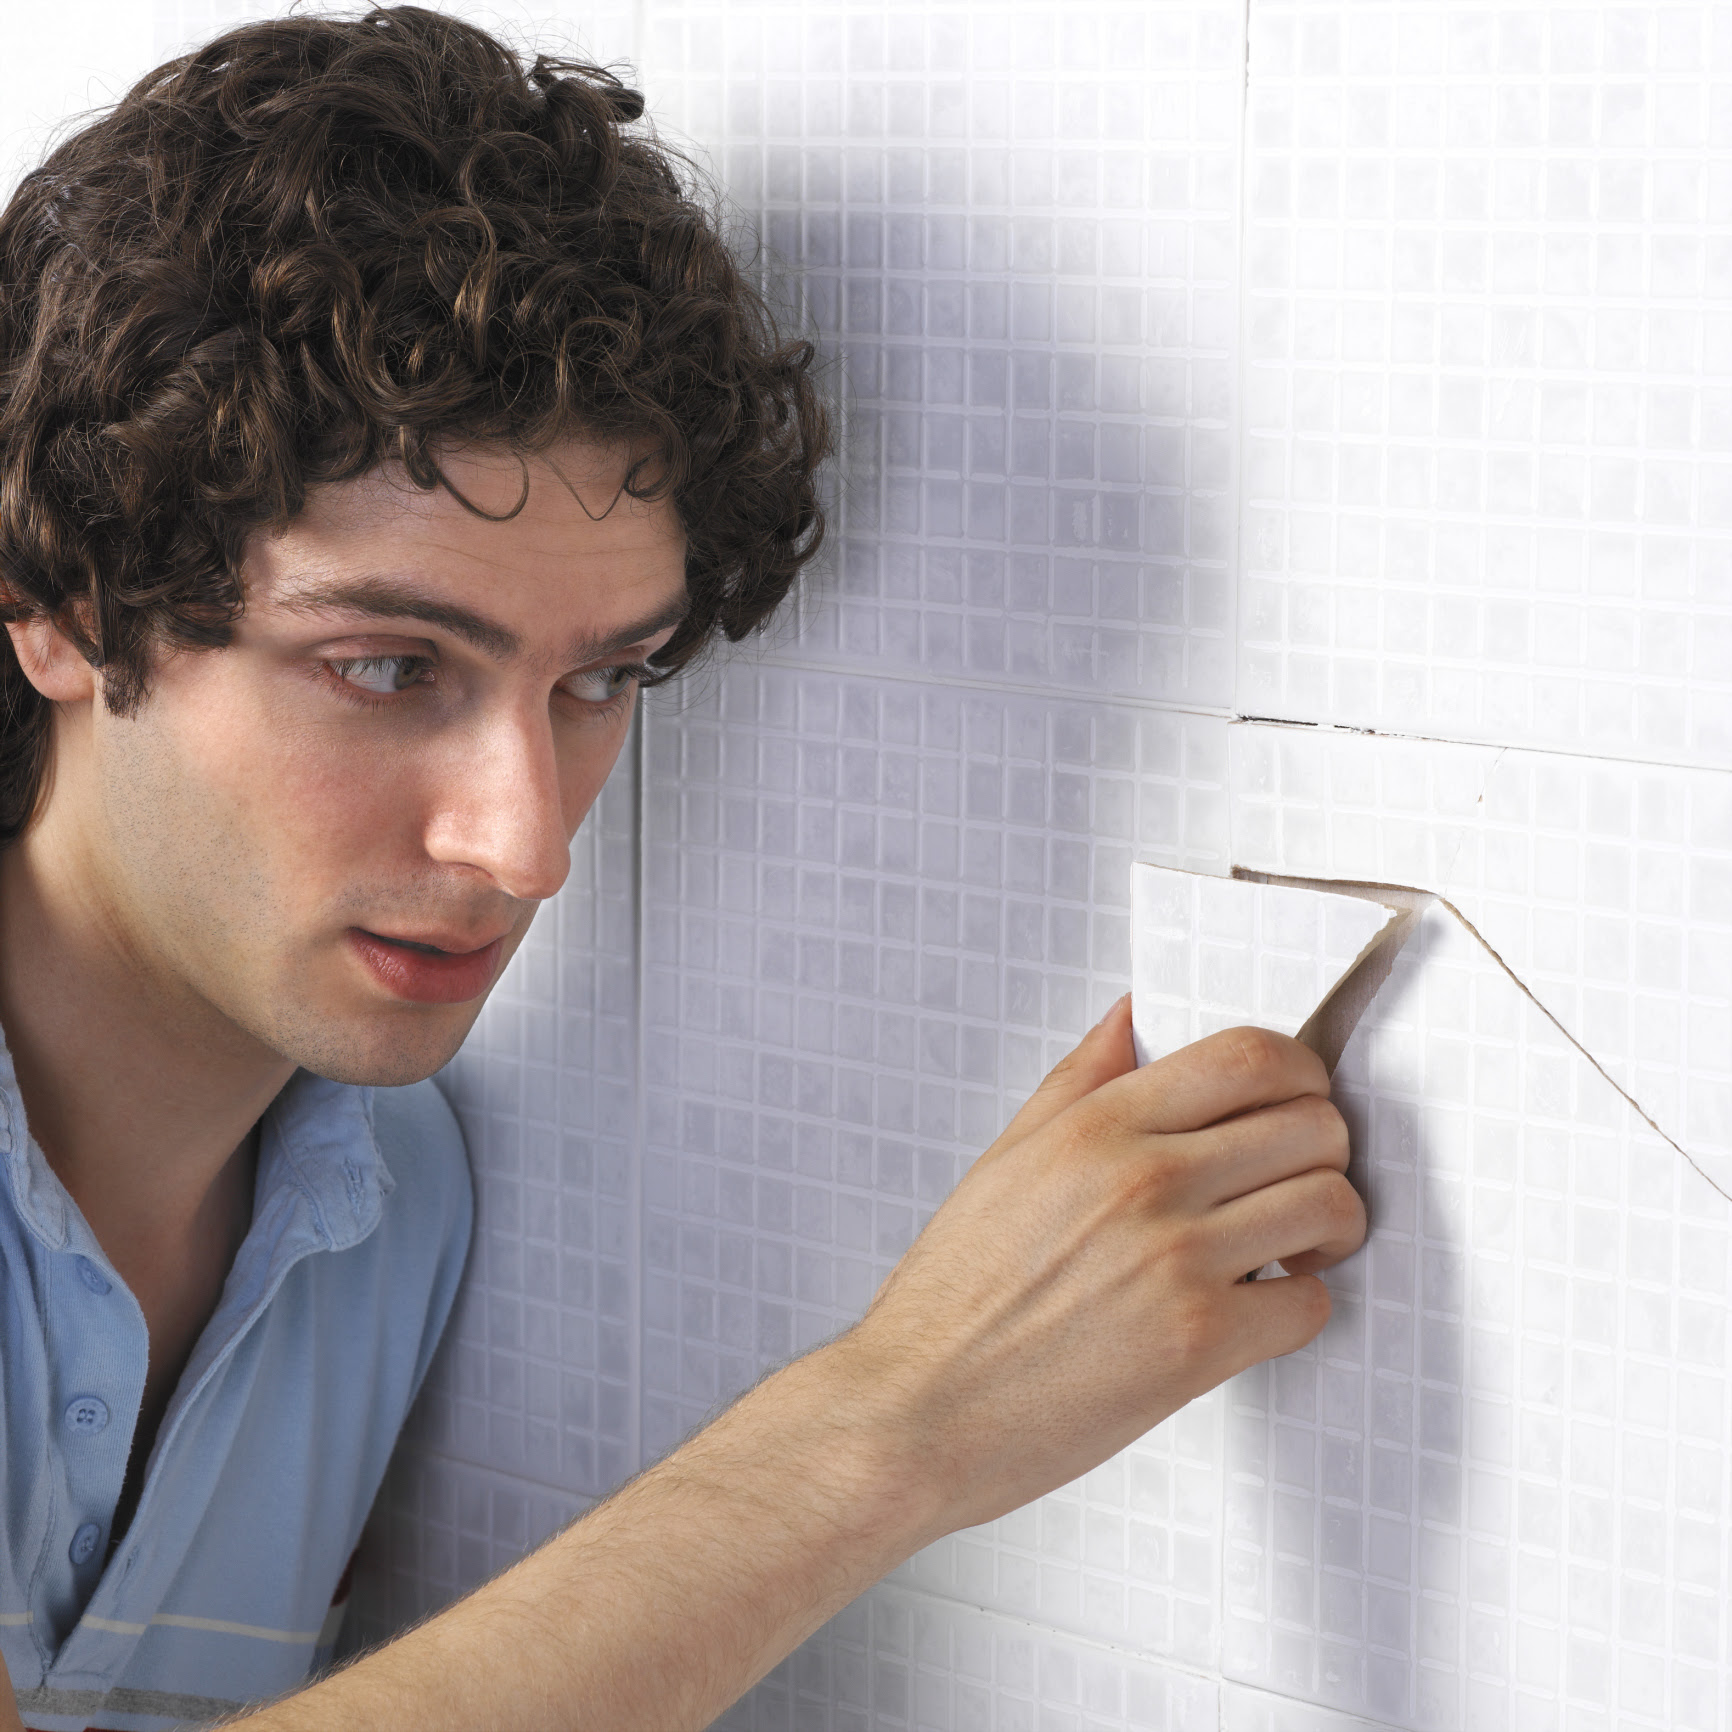 How to Remove Ceramic Wall Tile Without Damaging Drywall ...